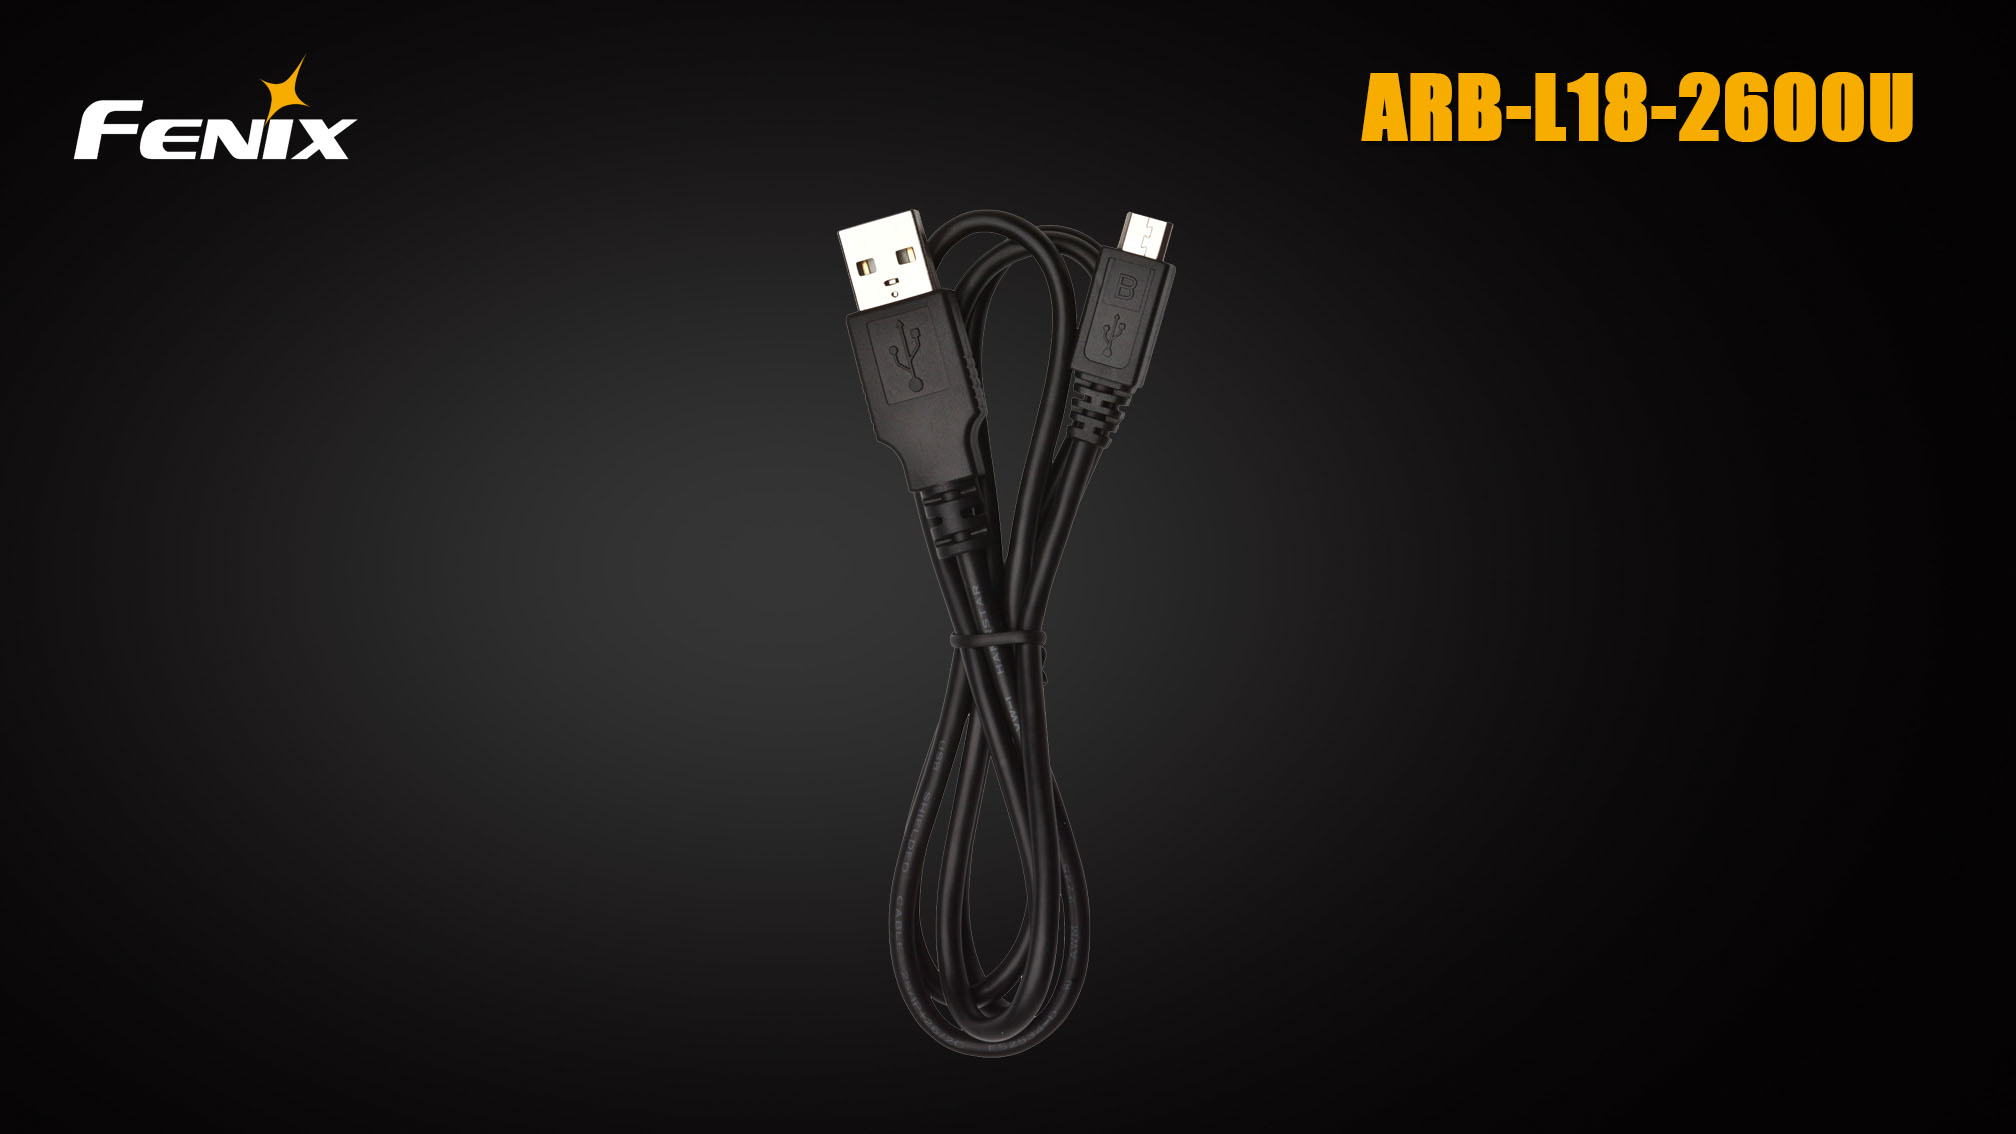 Fenix USB Charging Cable